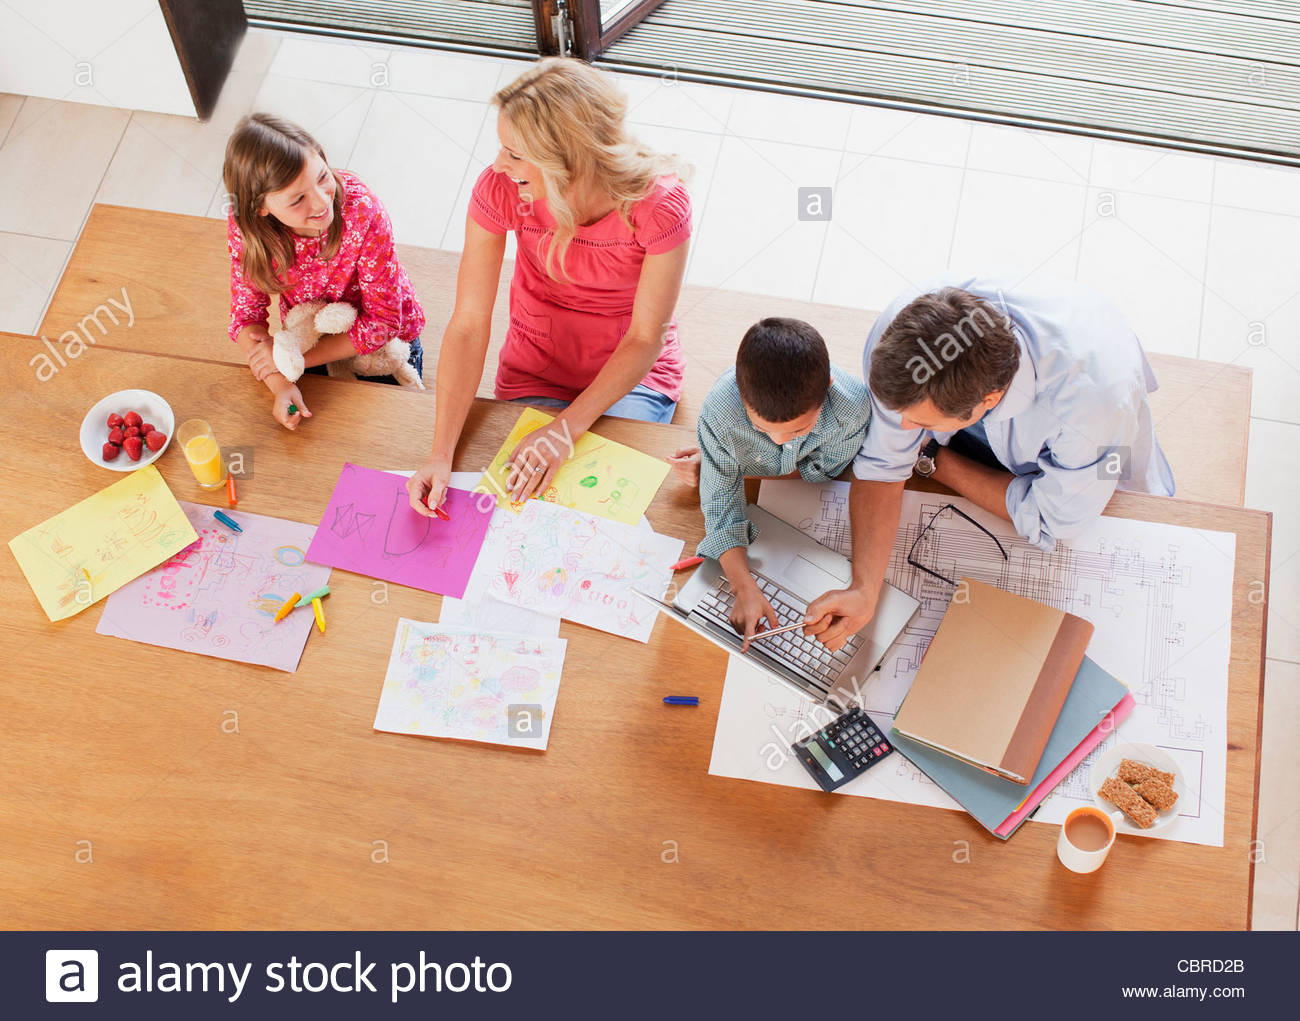 Family relaxing together at table Photo Stock